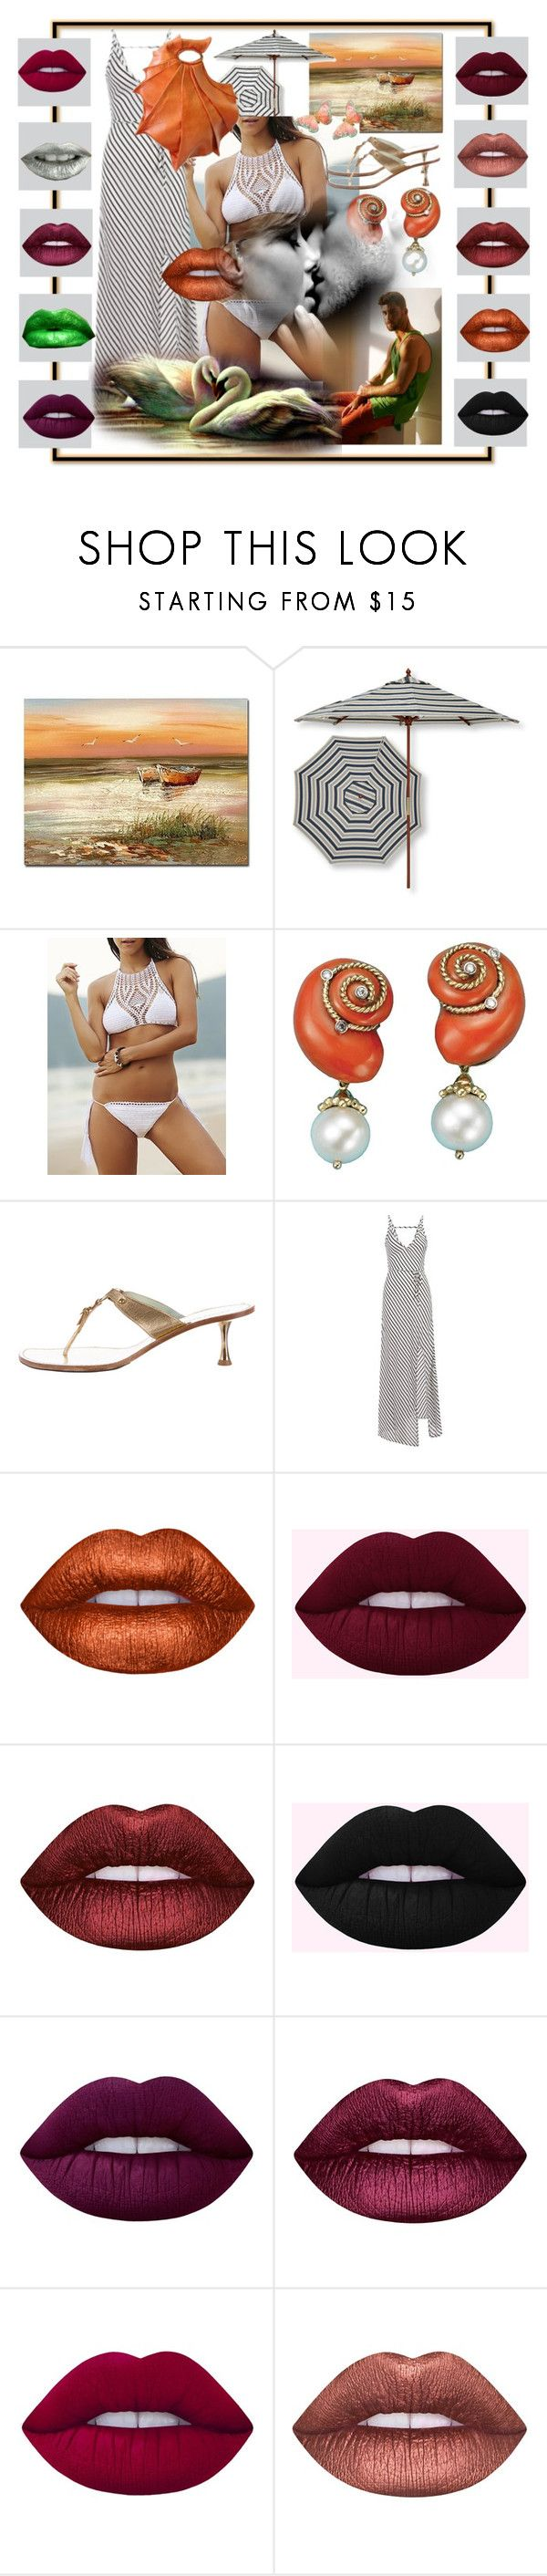 """""""DREAM BEACH HOUSE"""" by oliviaoistrach ❤ liked on Polyvore featuring Trademark Fine Art, L.L.Bean, Sigerson Morrison and Lime Crime"""